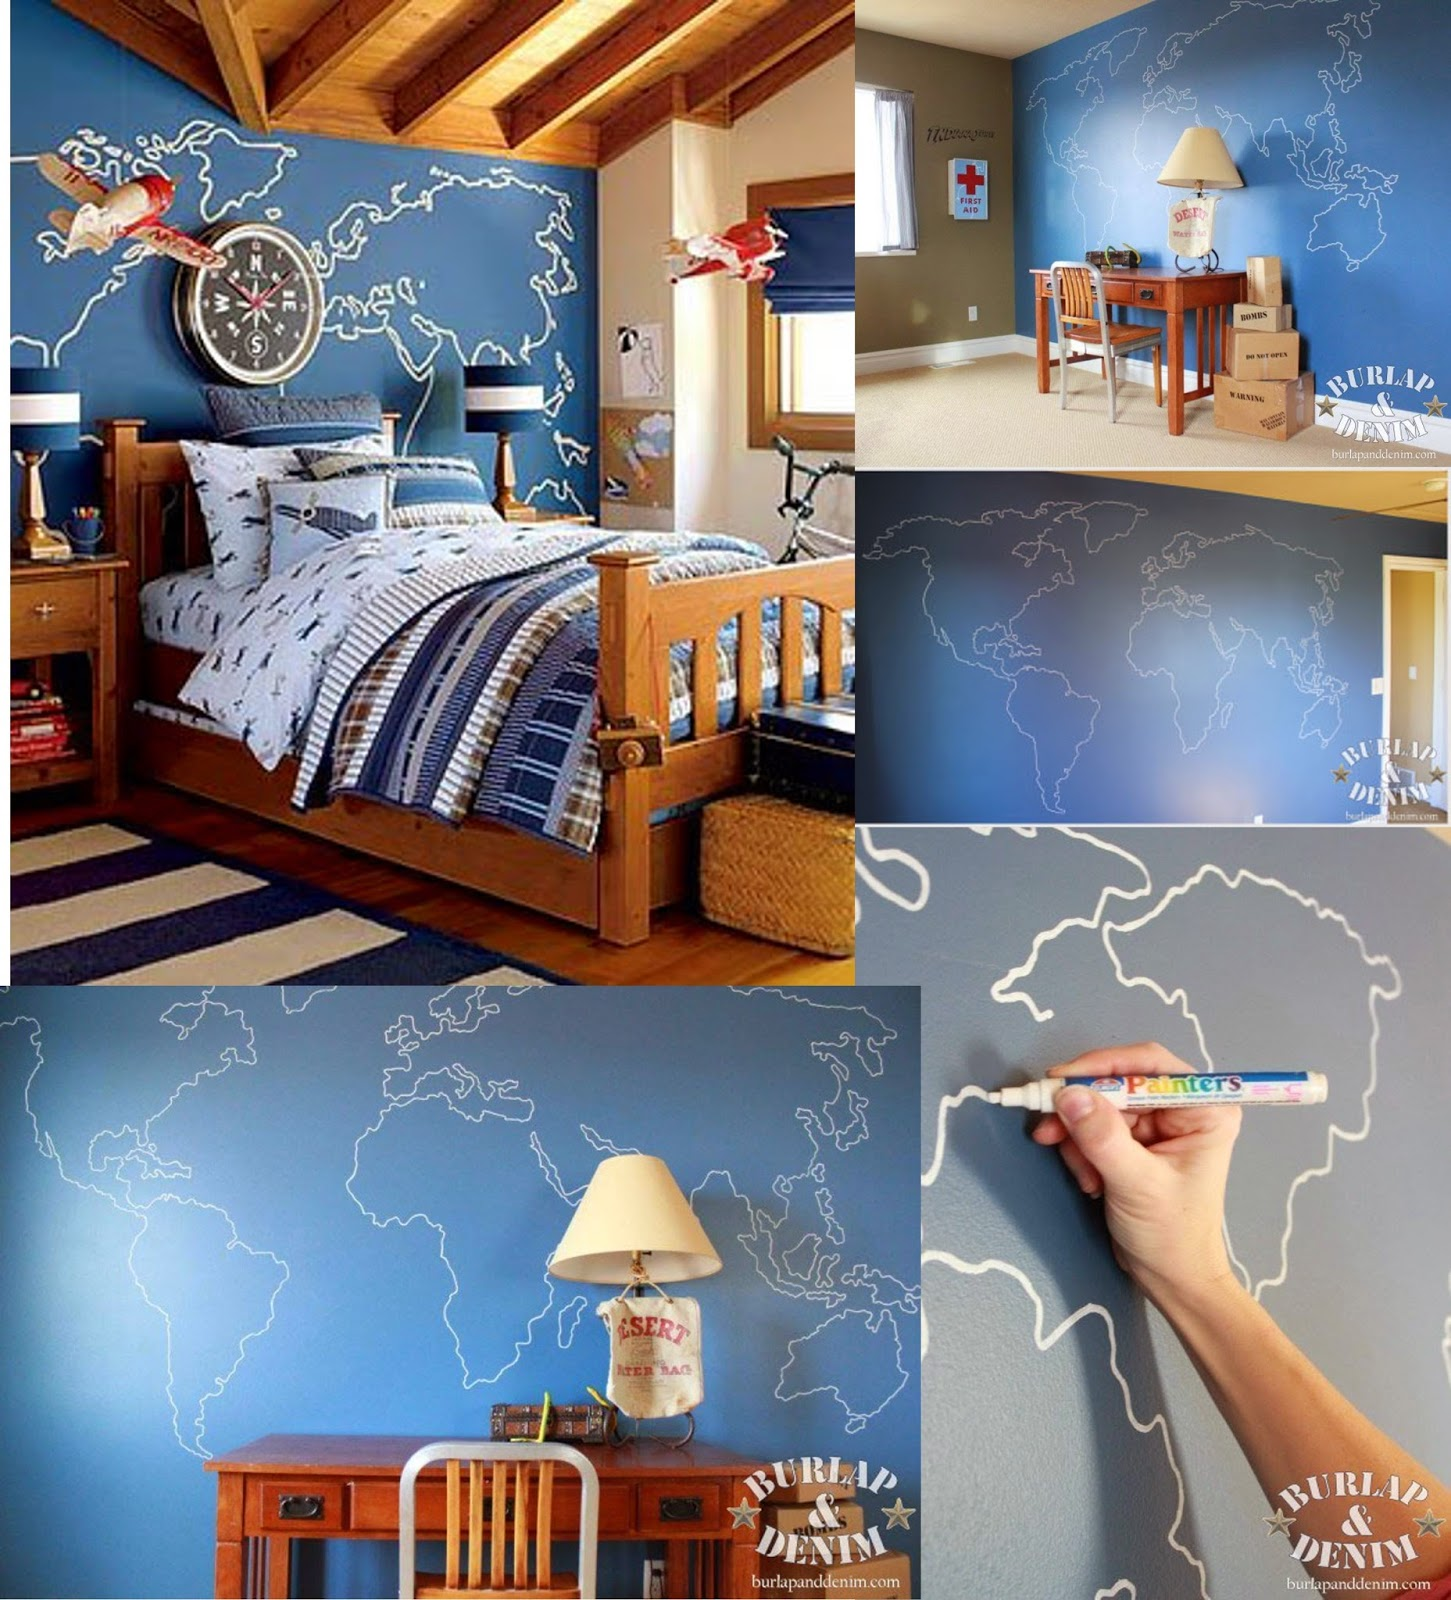 DIYs Design In Living Spaces - Us map you can draw on